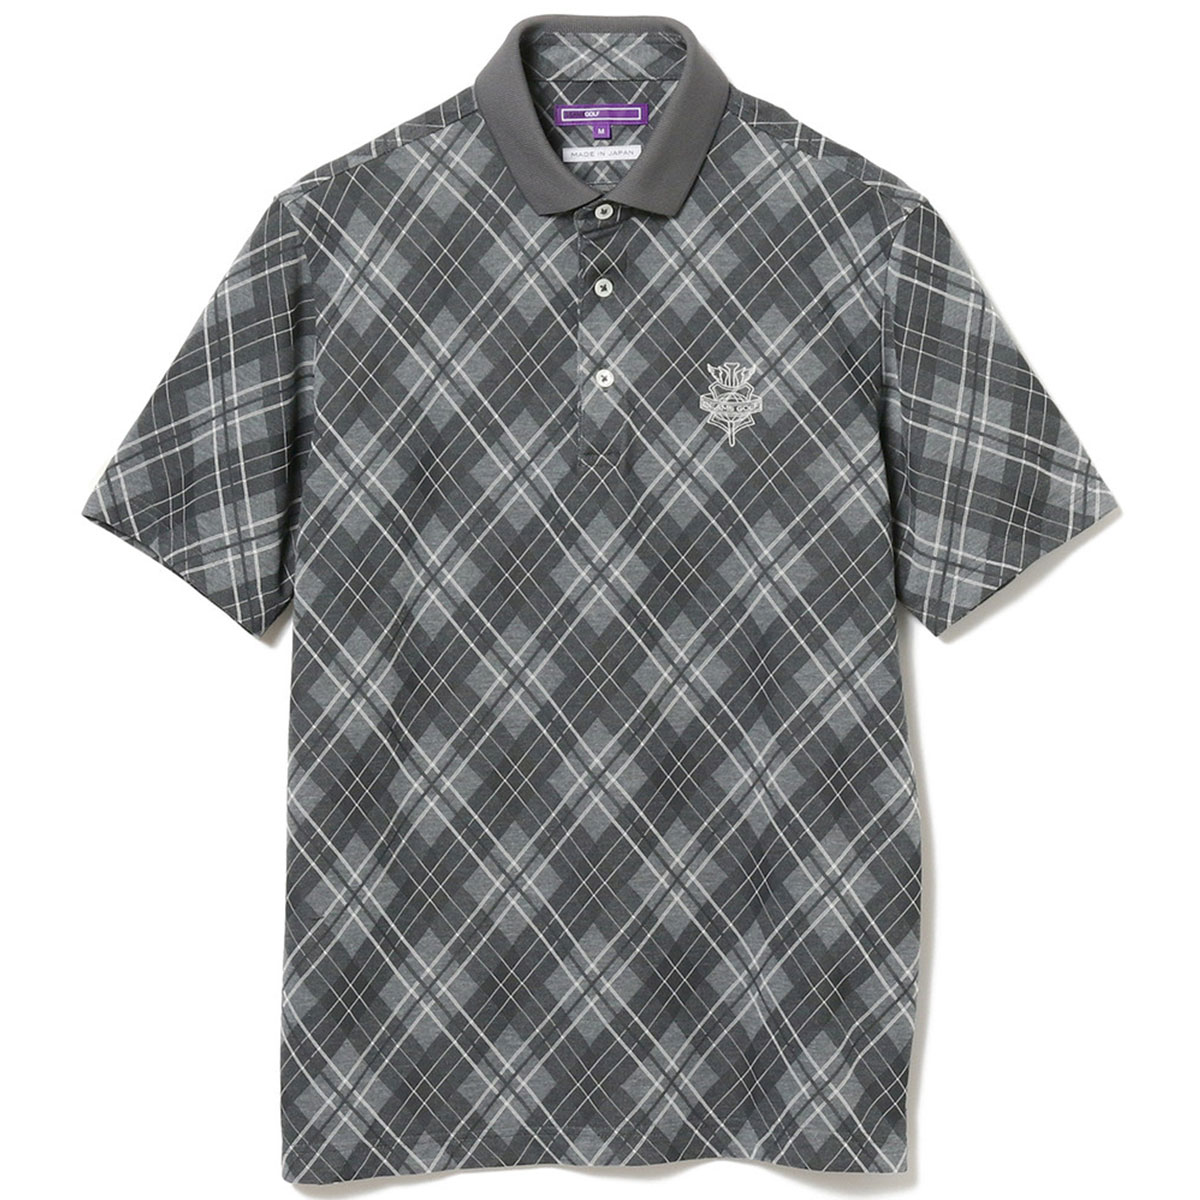 BEAMS GOLF PURPLE LABEL ARGYLE ポロシャツ